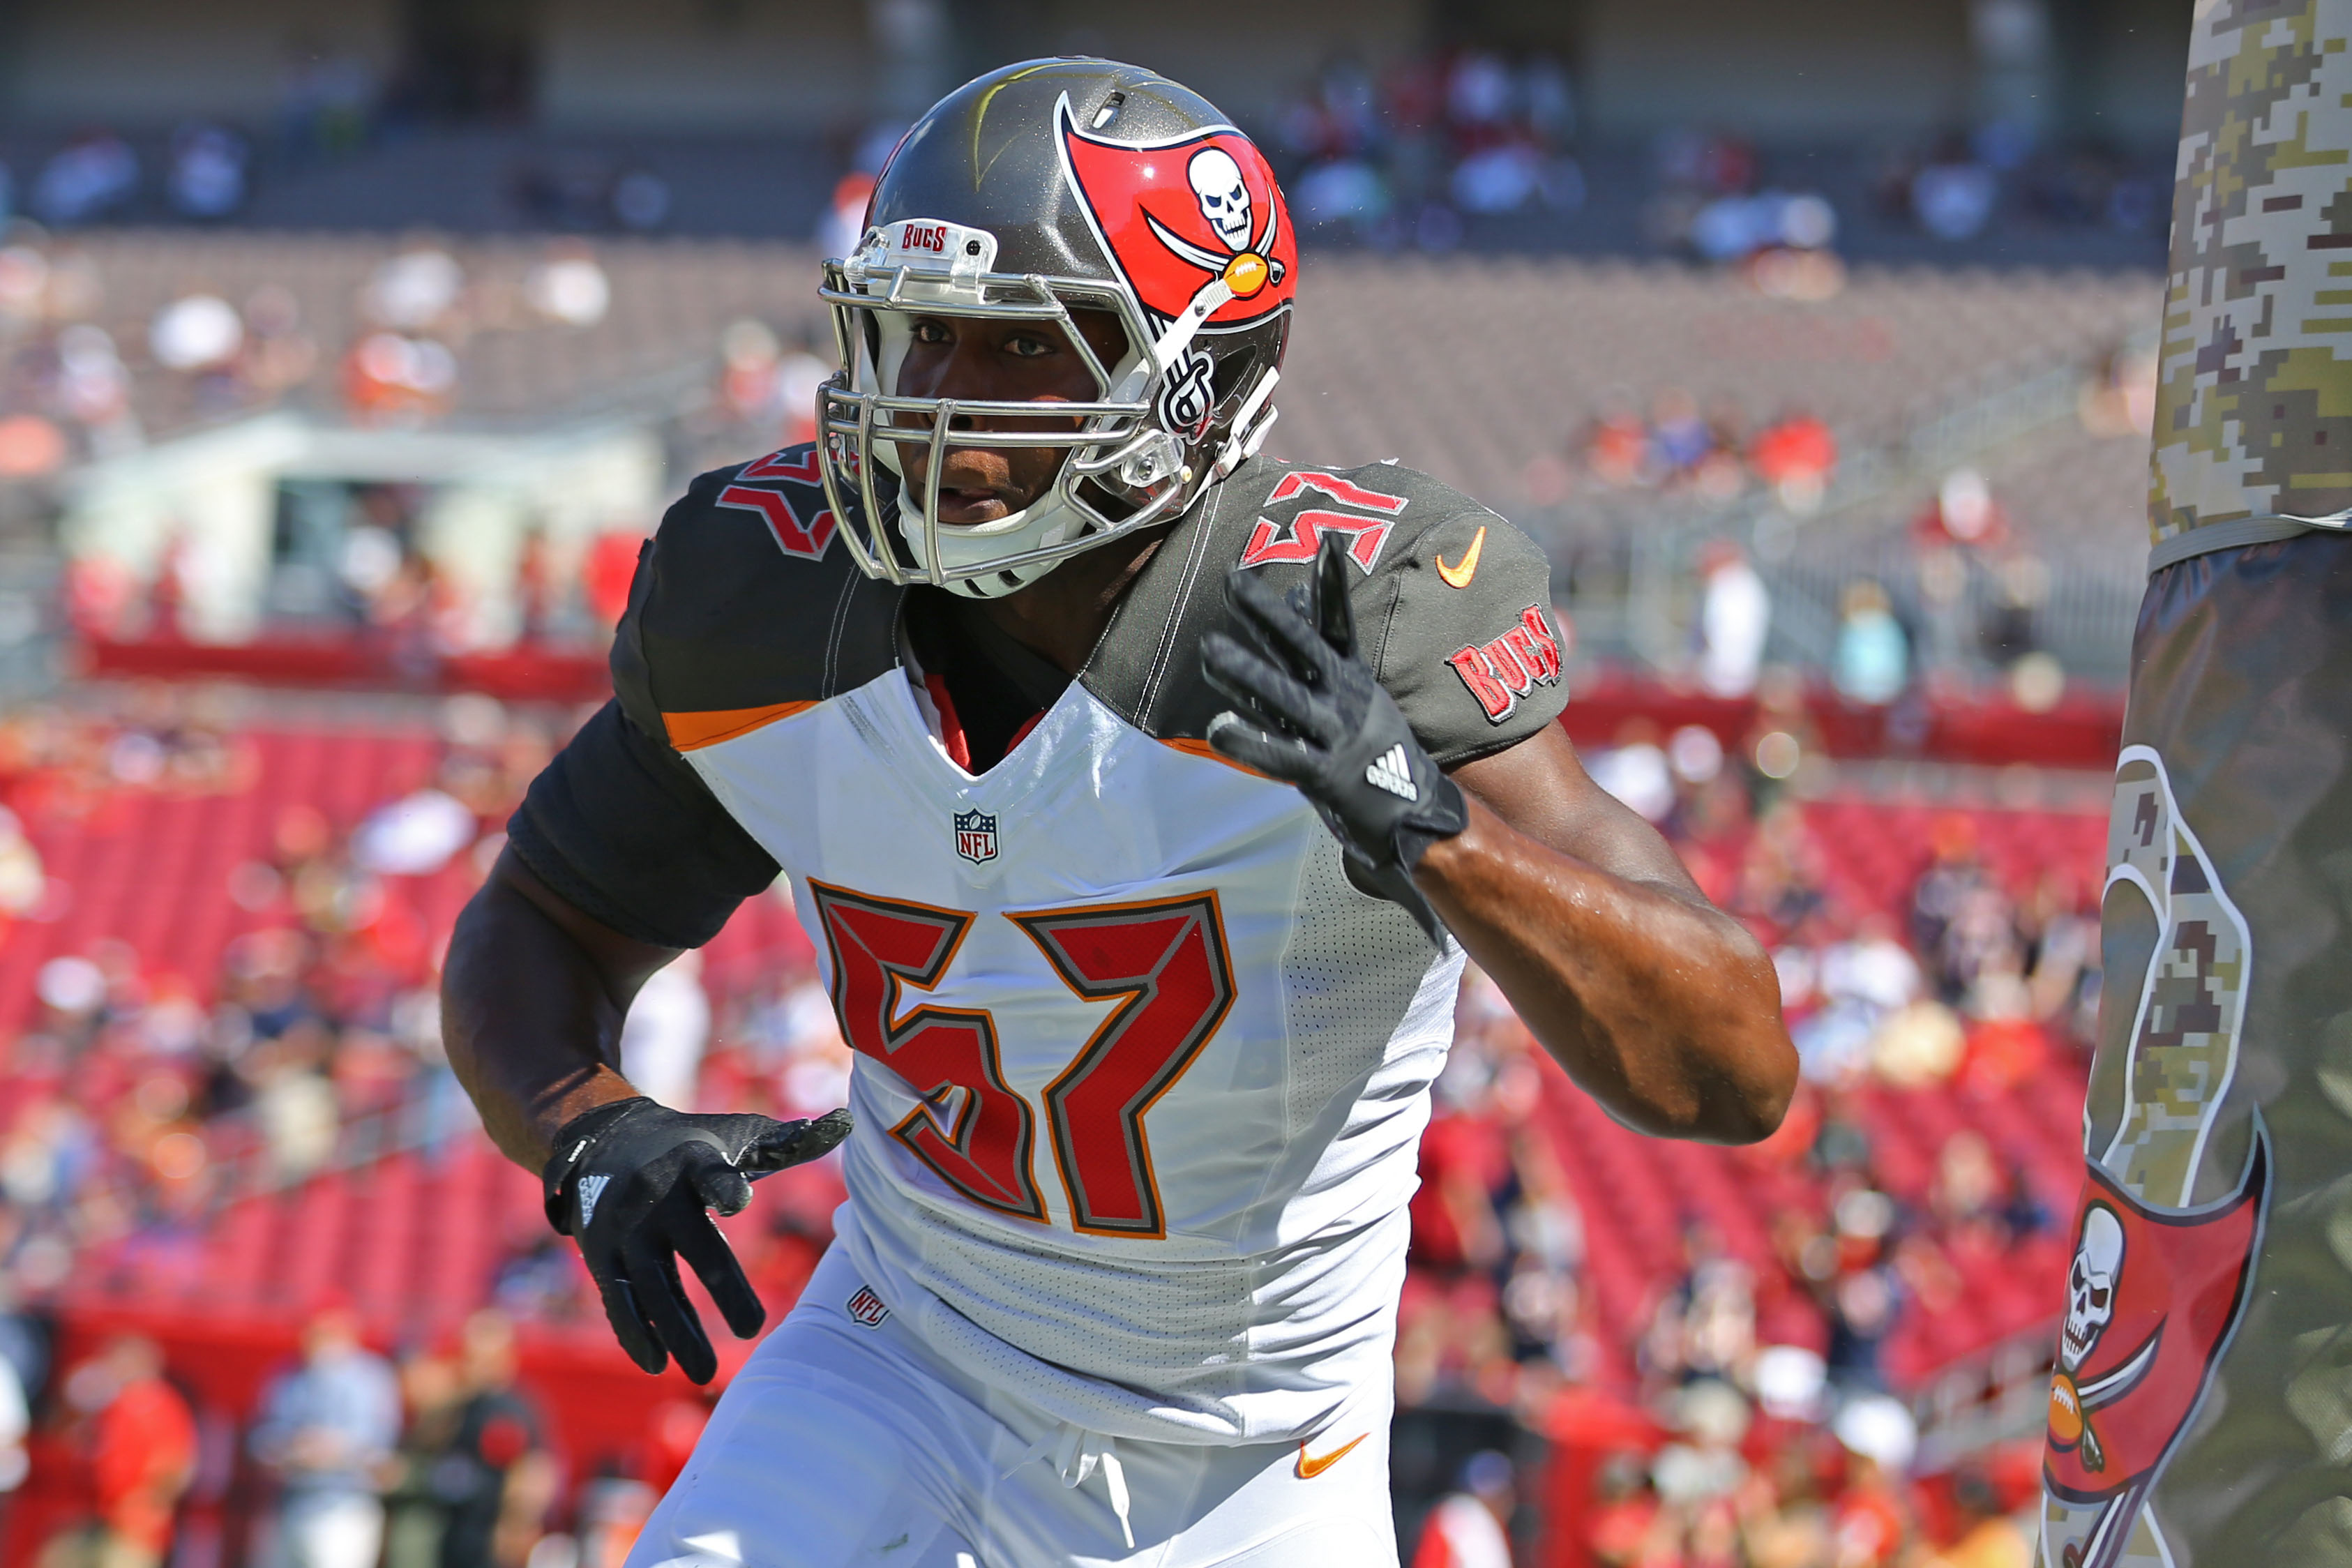 The Bucs' new defense will let Noah Spence show he's a quarterback's worst nightmare